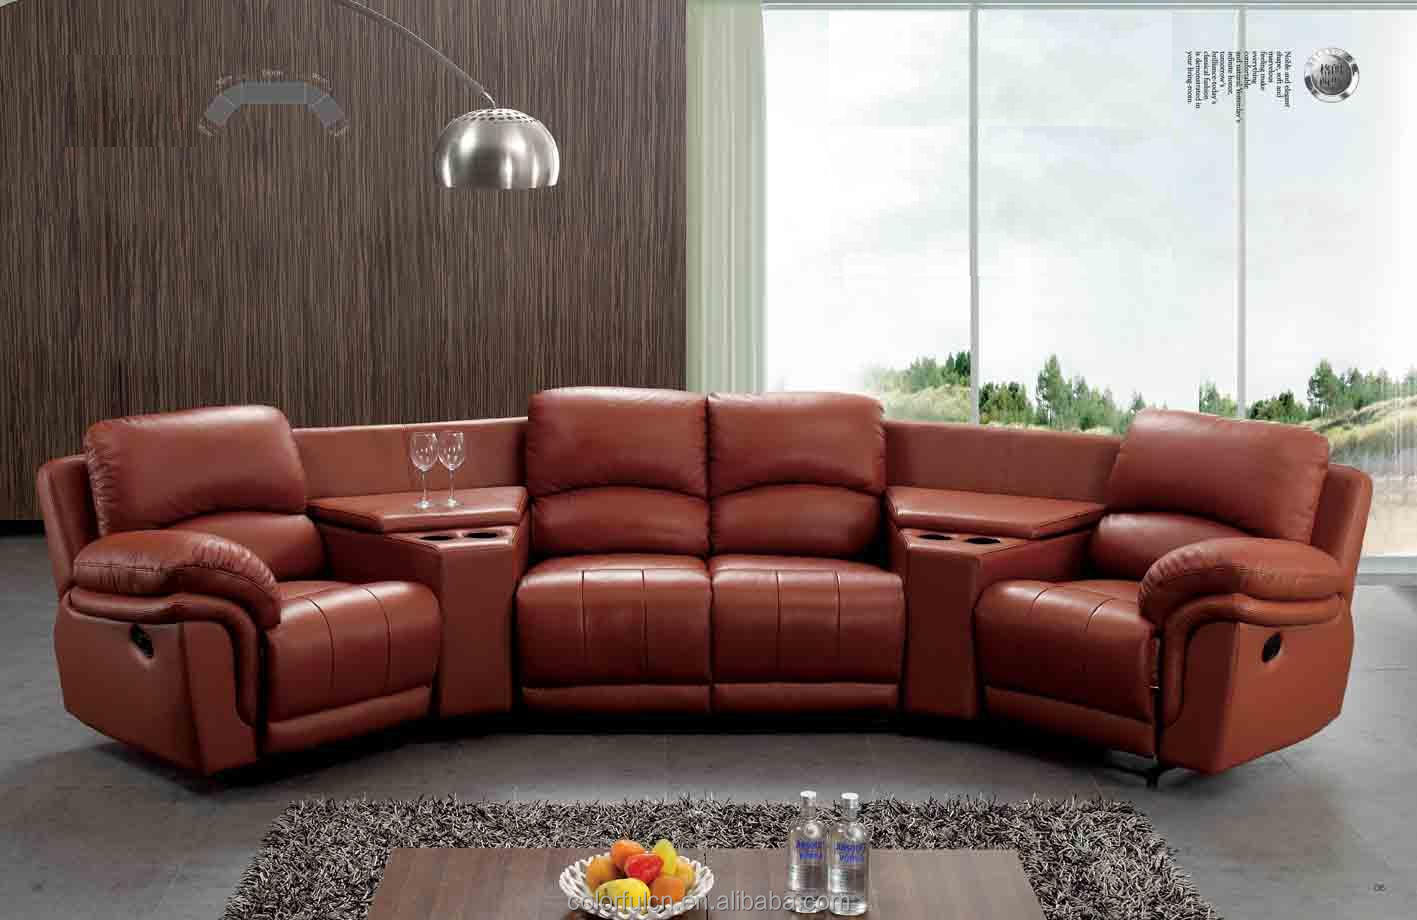 Semi Circle Sectional Sofa